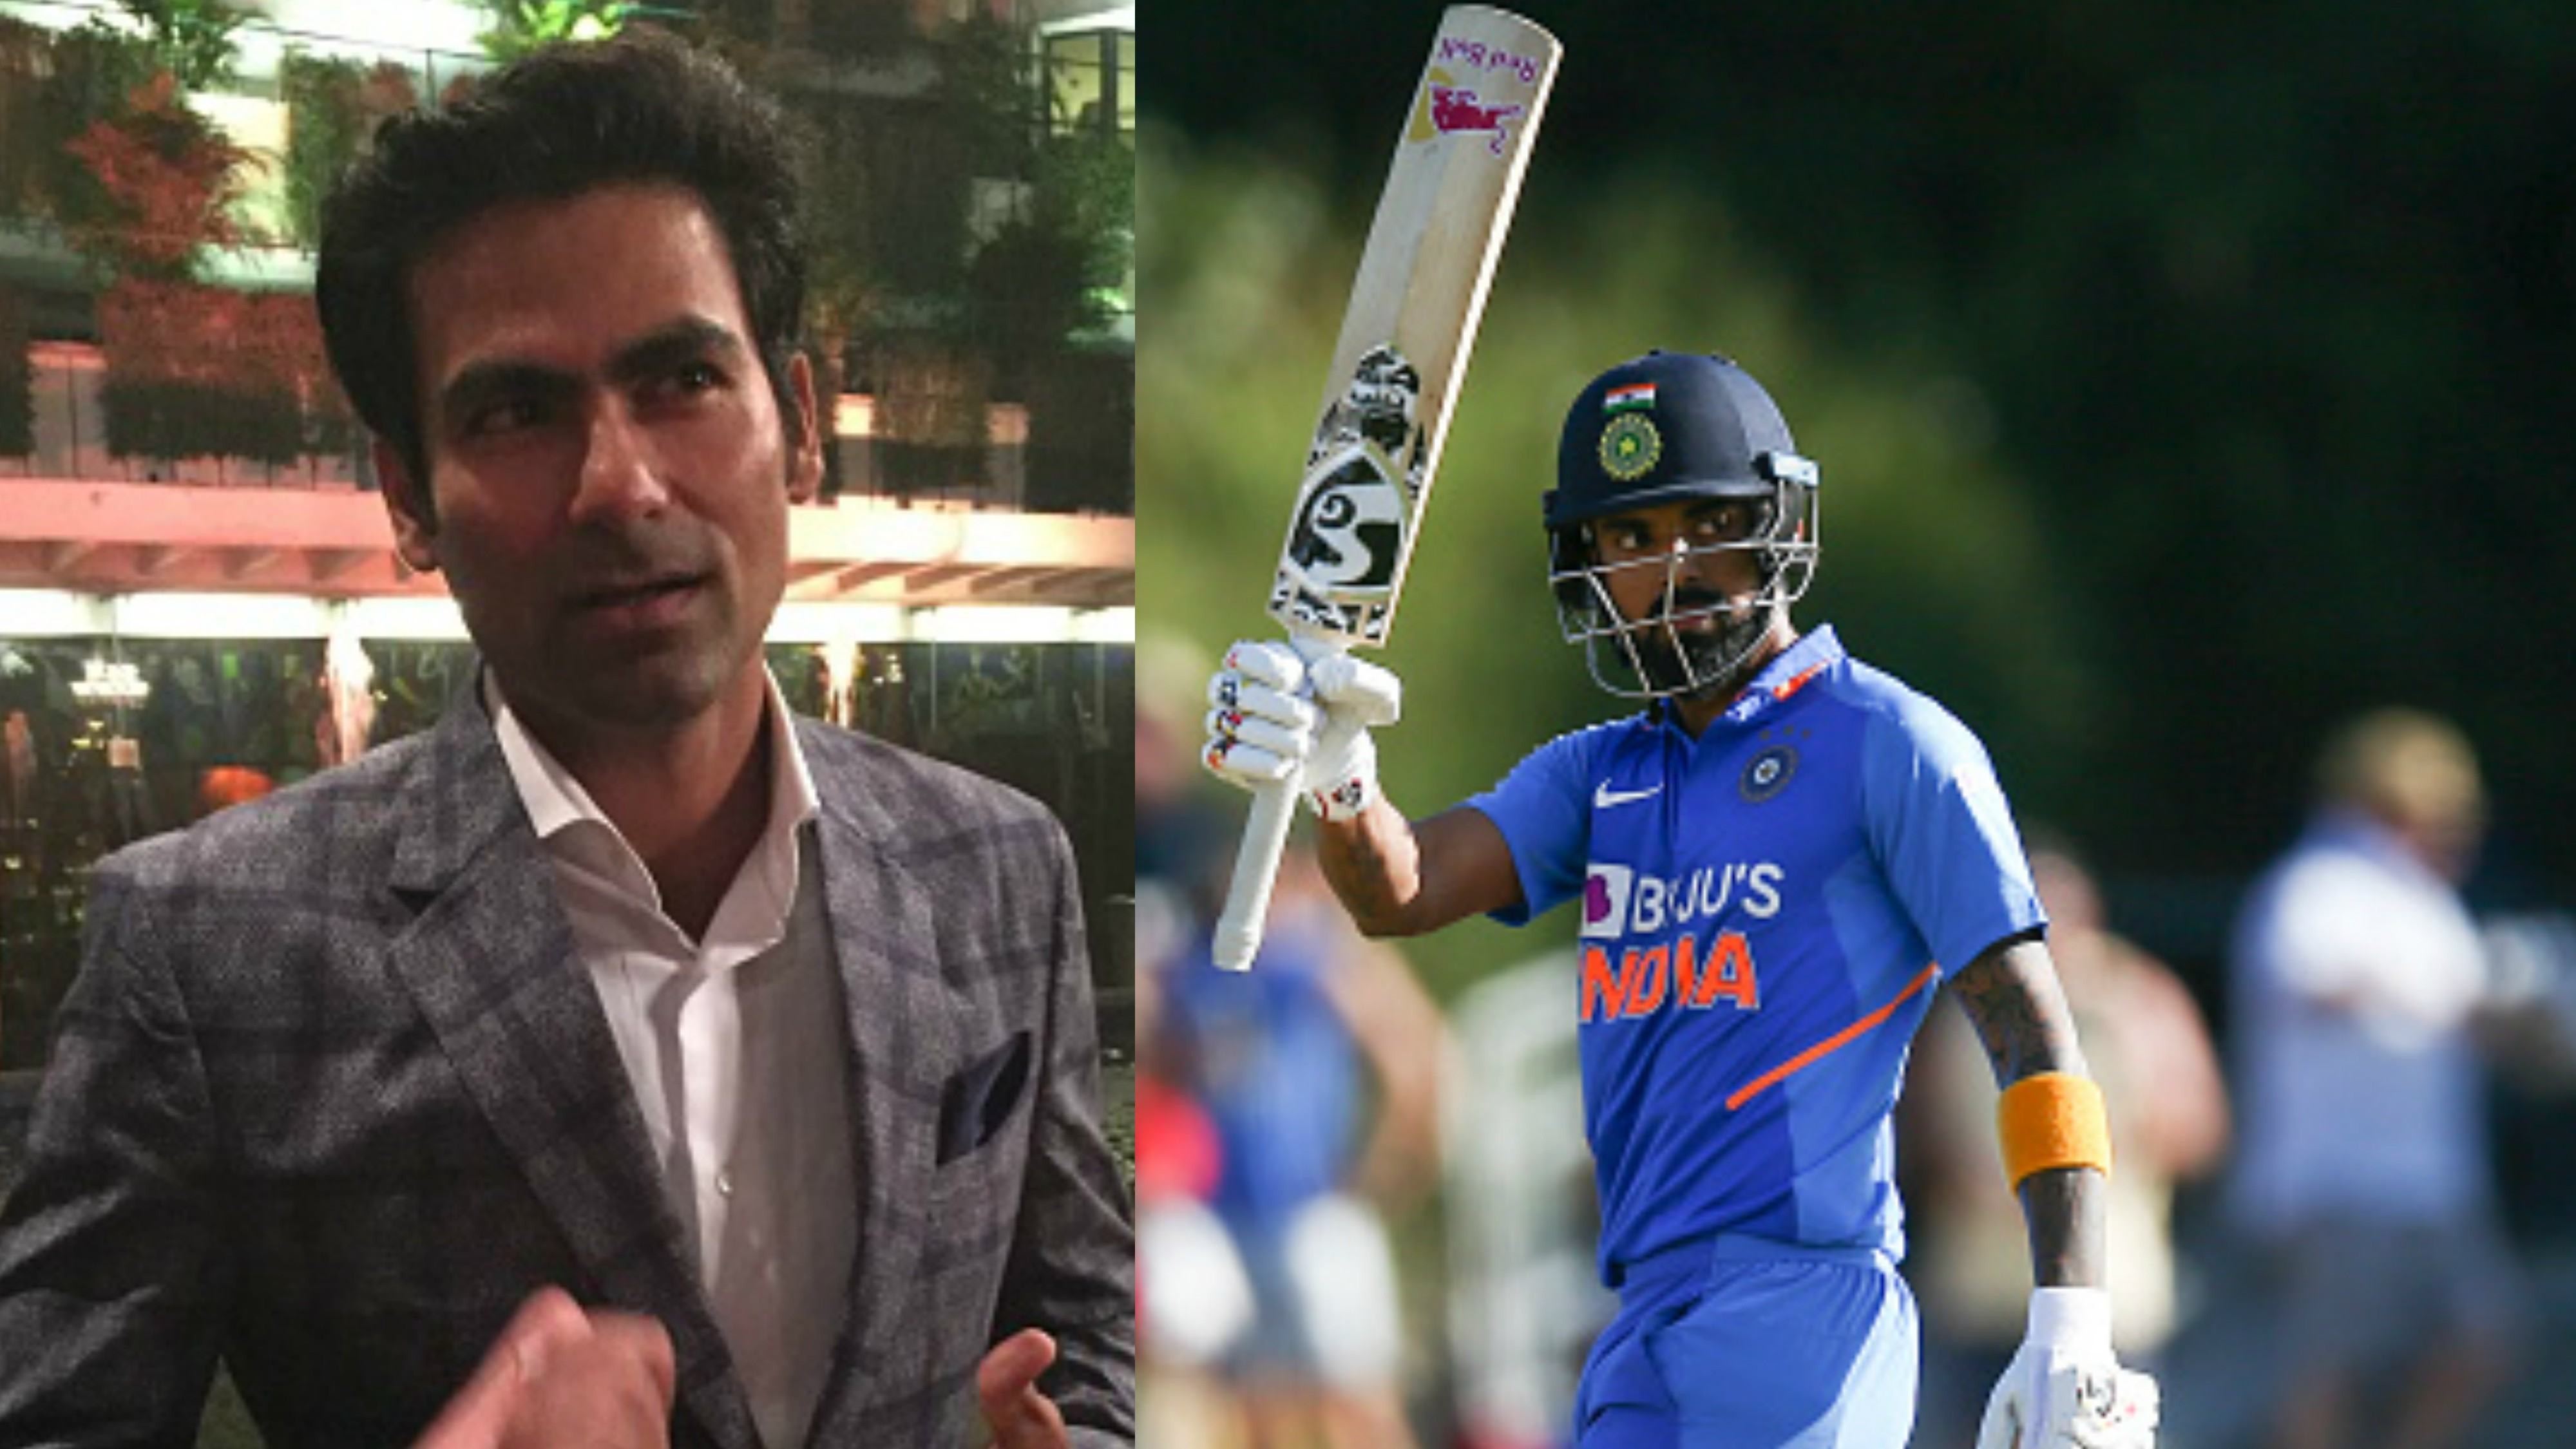 NZ v IND 2020: Mohammad Kaif calls KL Rahul India's very own Swiss knife after Hamilton heroics